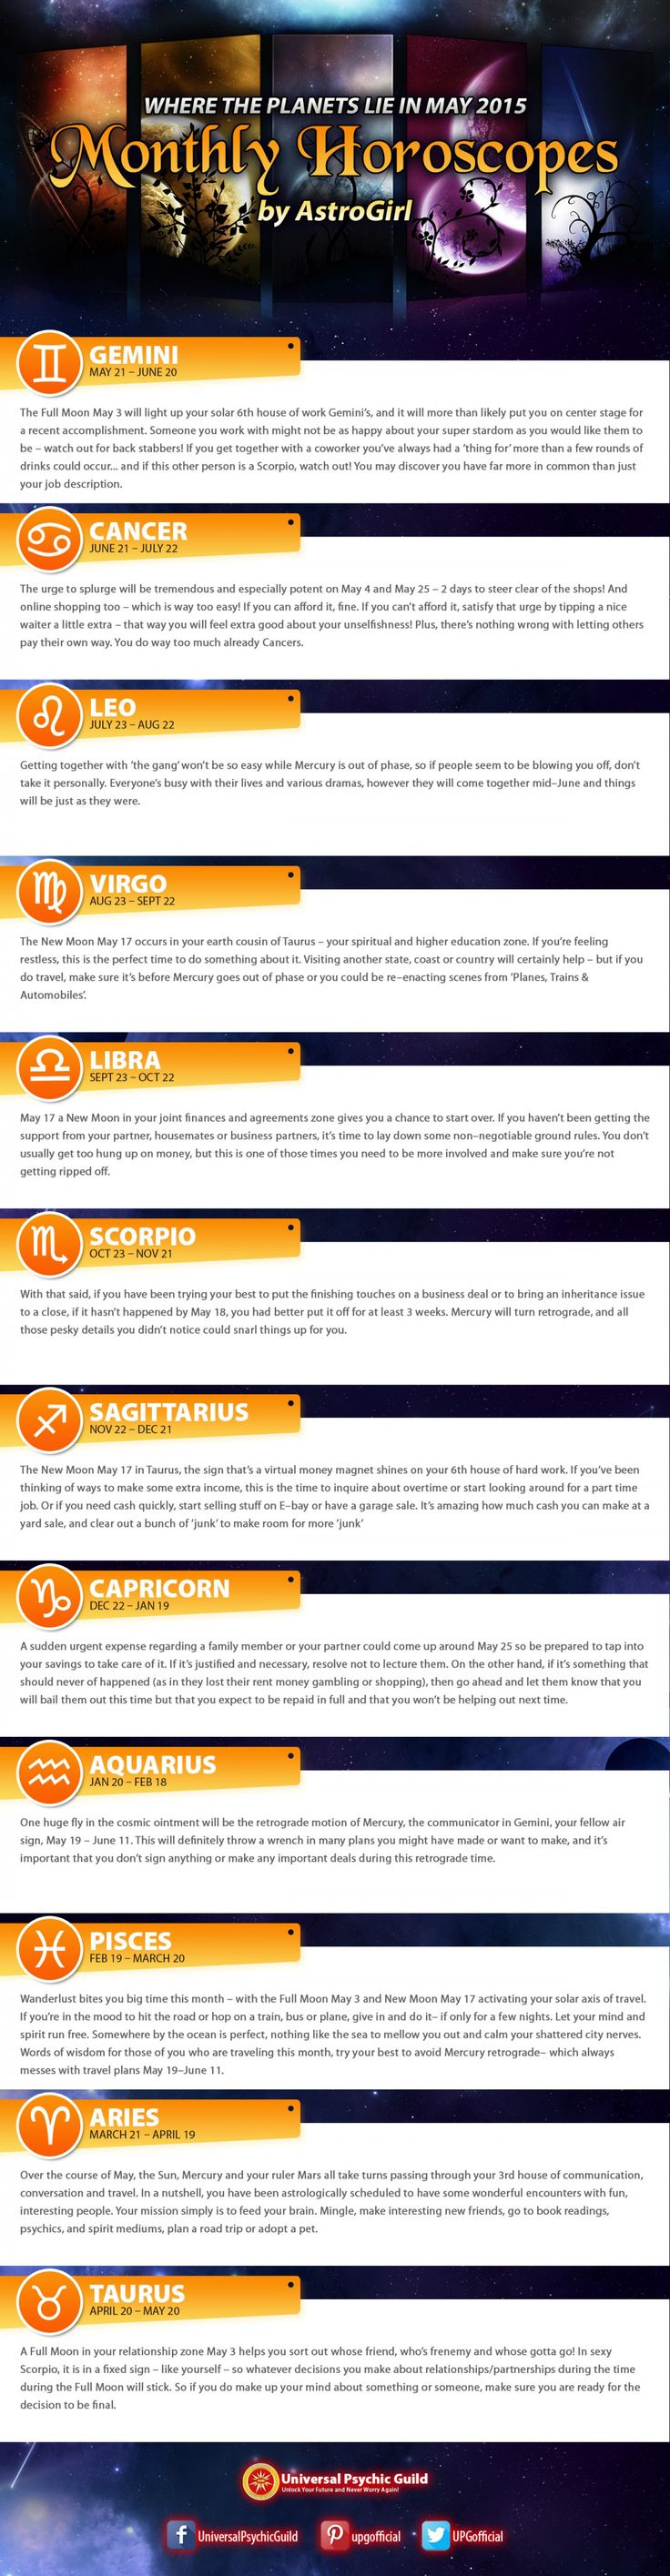 Monthly #Horoscope Forecast for May 2015 #Infographic by PsychicGuild.com #astrology #zodiacsigns